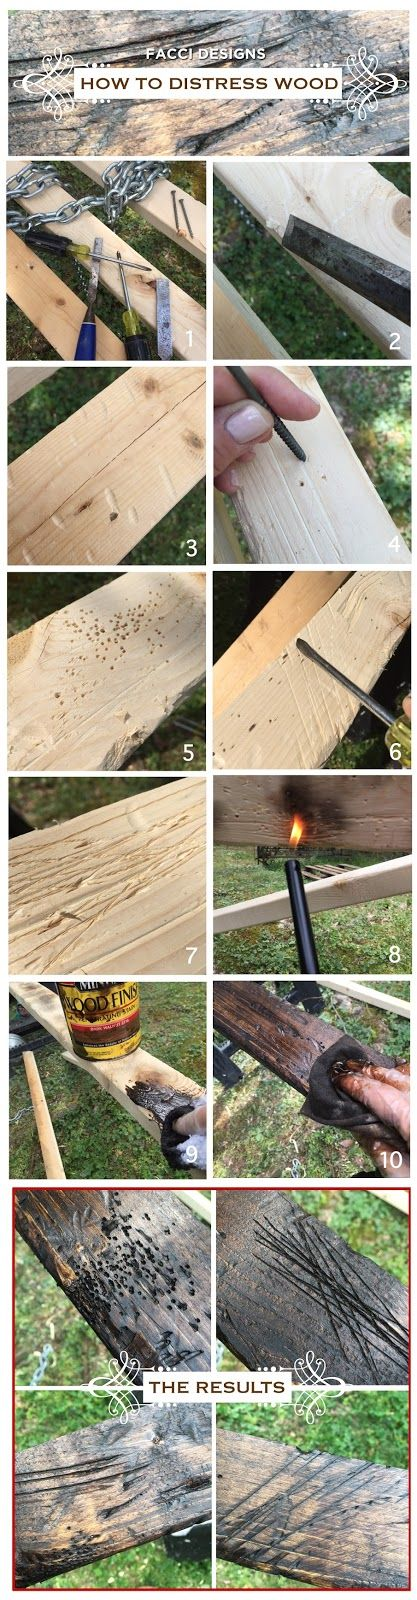 FACCI DESIGNS: How to Make New Wood Look Old and Distressed - 13 Best Images About Making New Wood Look Old On Pinterest